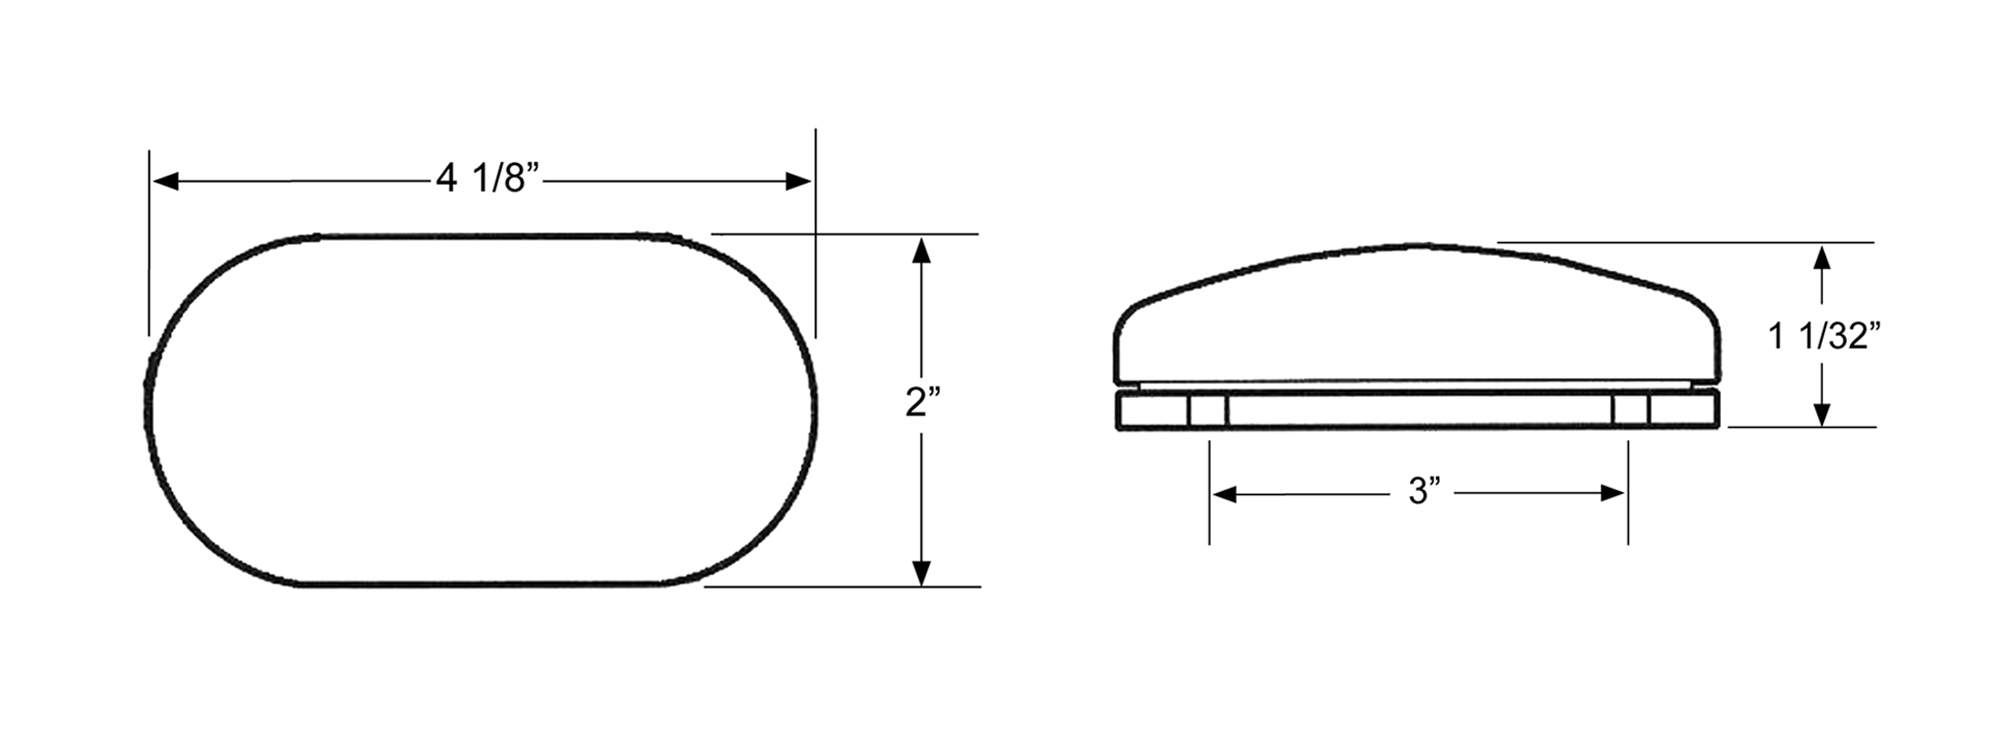 Blazer Fog Light Wiring Diagram Diagrams